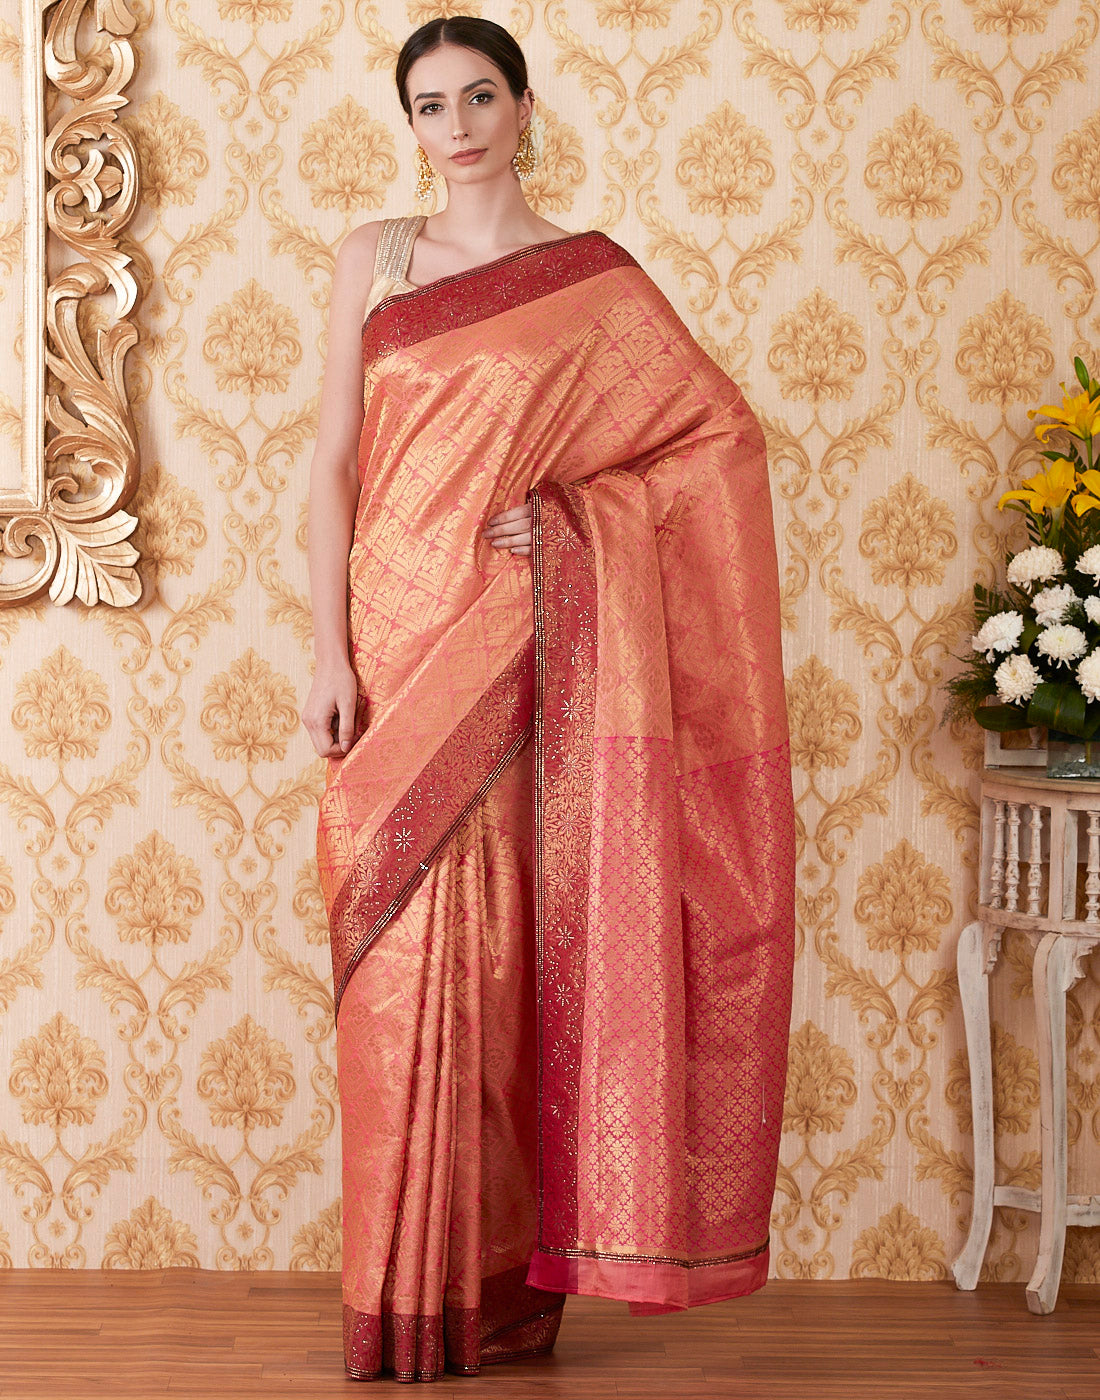 Rani Banarasi Silk Embroidered Woven Saree